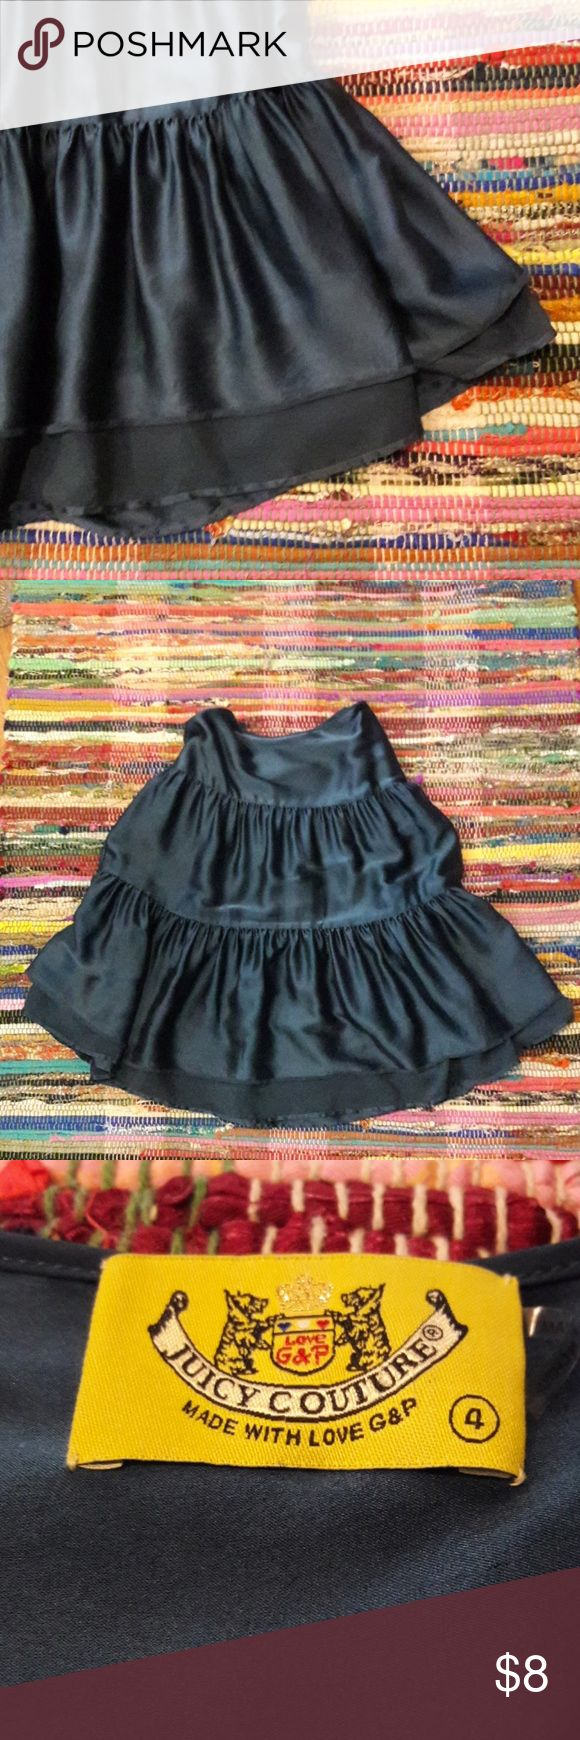 """Dark Boho Juicy Couture Sz 4 Skirt Mori Gorgeous, tiered and layered dark jewel toned teal Boho skirt. Lots of swish and a chiffon layer that peaks out from under. Great for grunge, mori or whatever you please! Winter, Spring, Fall, Summer! Excellent condition! Always romantic! Low slung waist measures 34"""", side zip and hook with a 25"""" length! Smoke and pet free! Bundle your hearts out and save! Xo Juicy Couture Skirts Midi"""